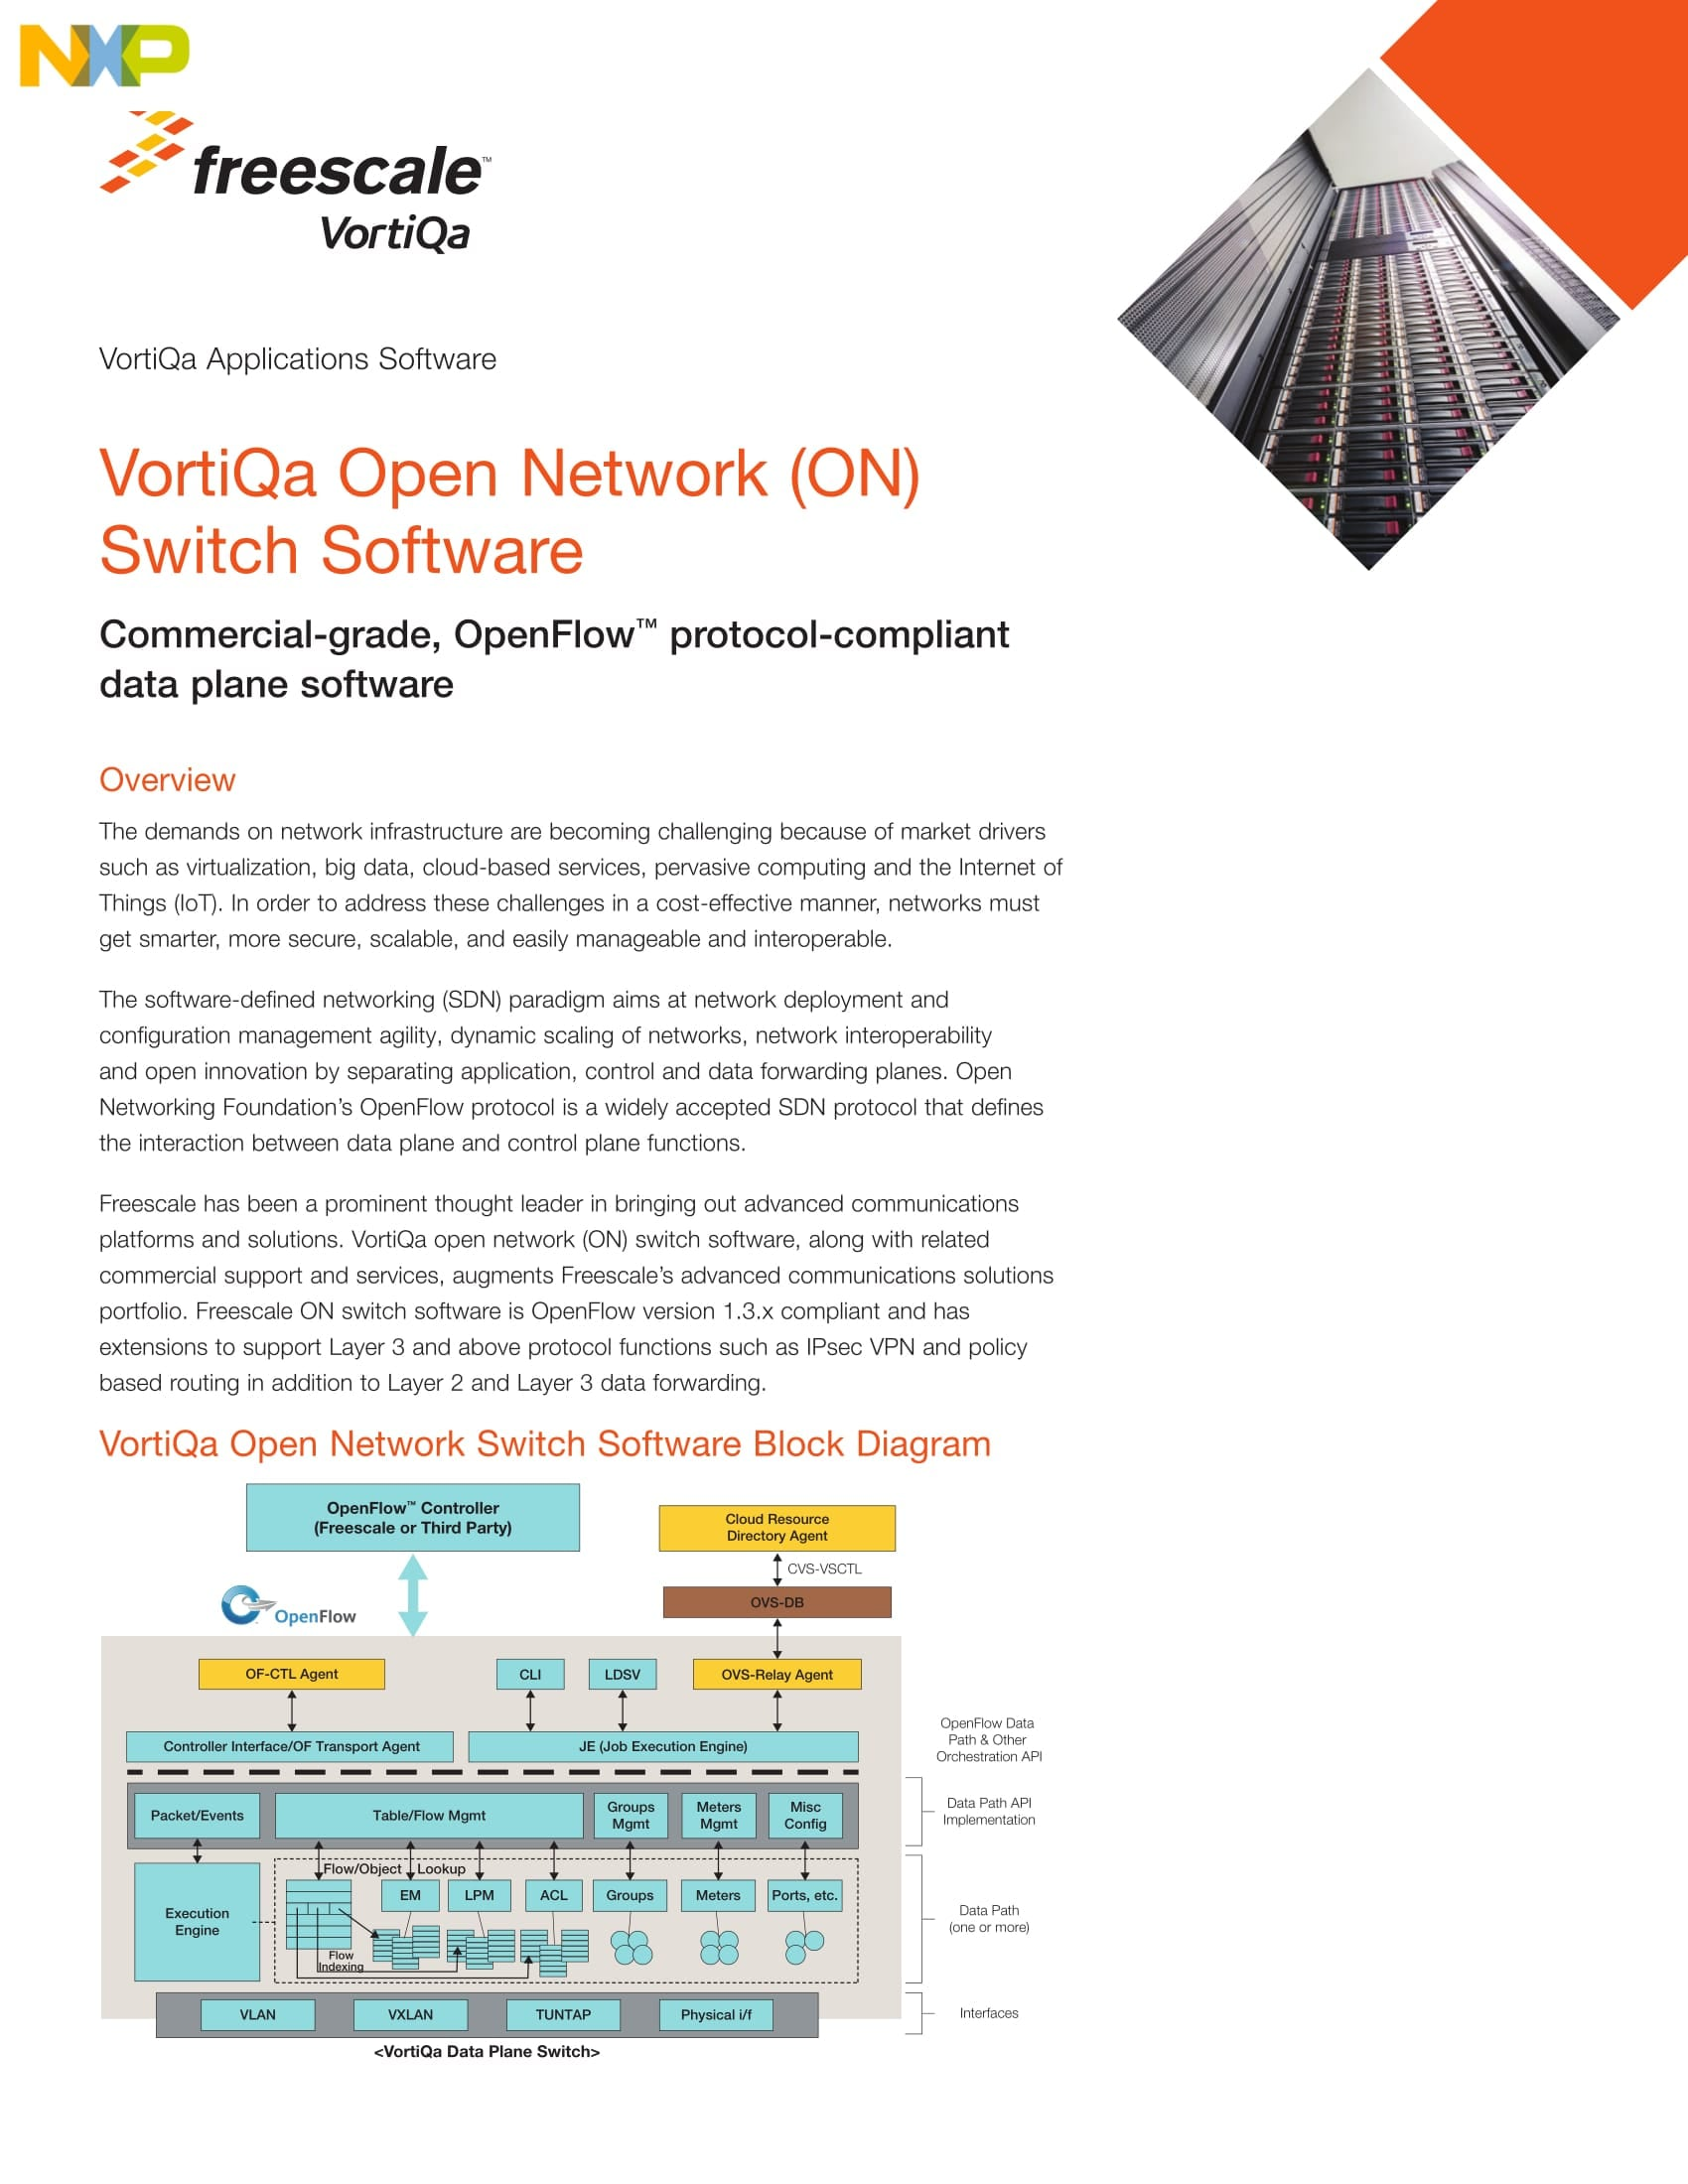 VortiQa Open Network (ON) Switch Software